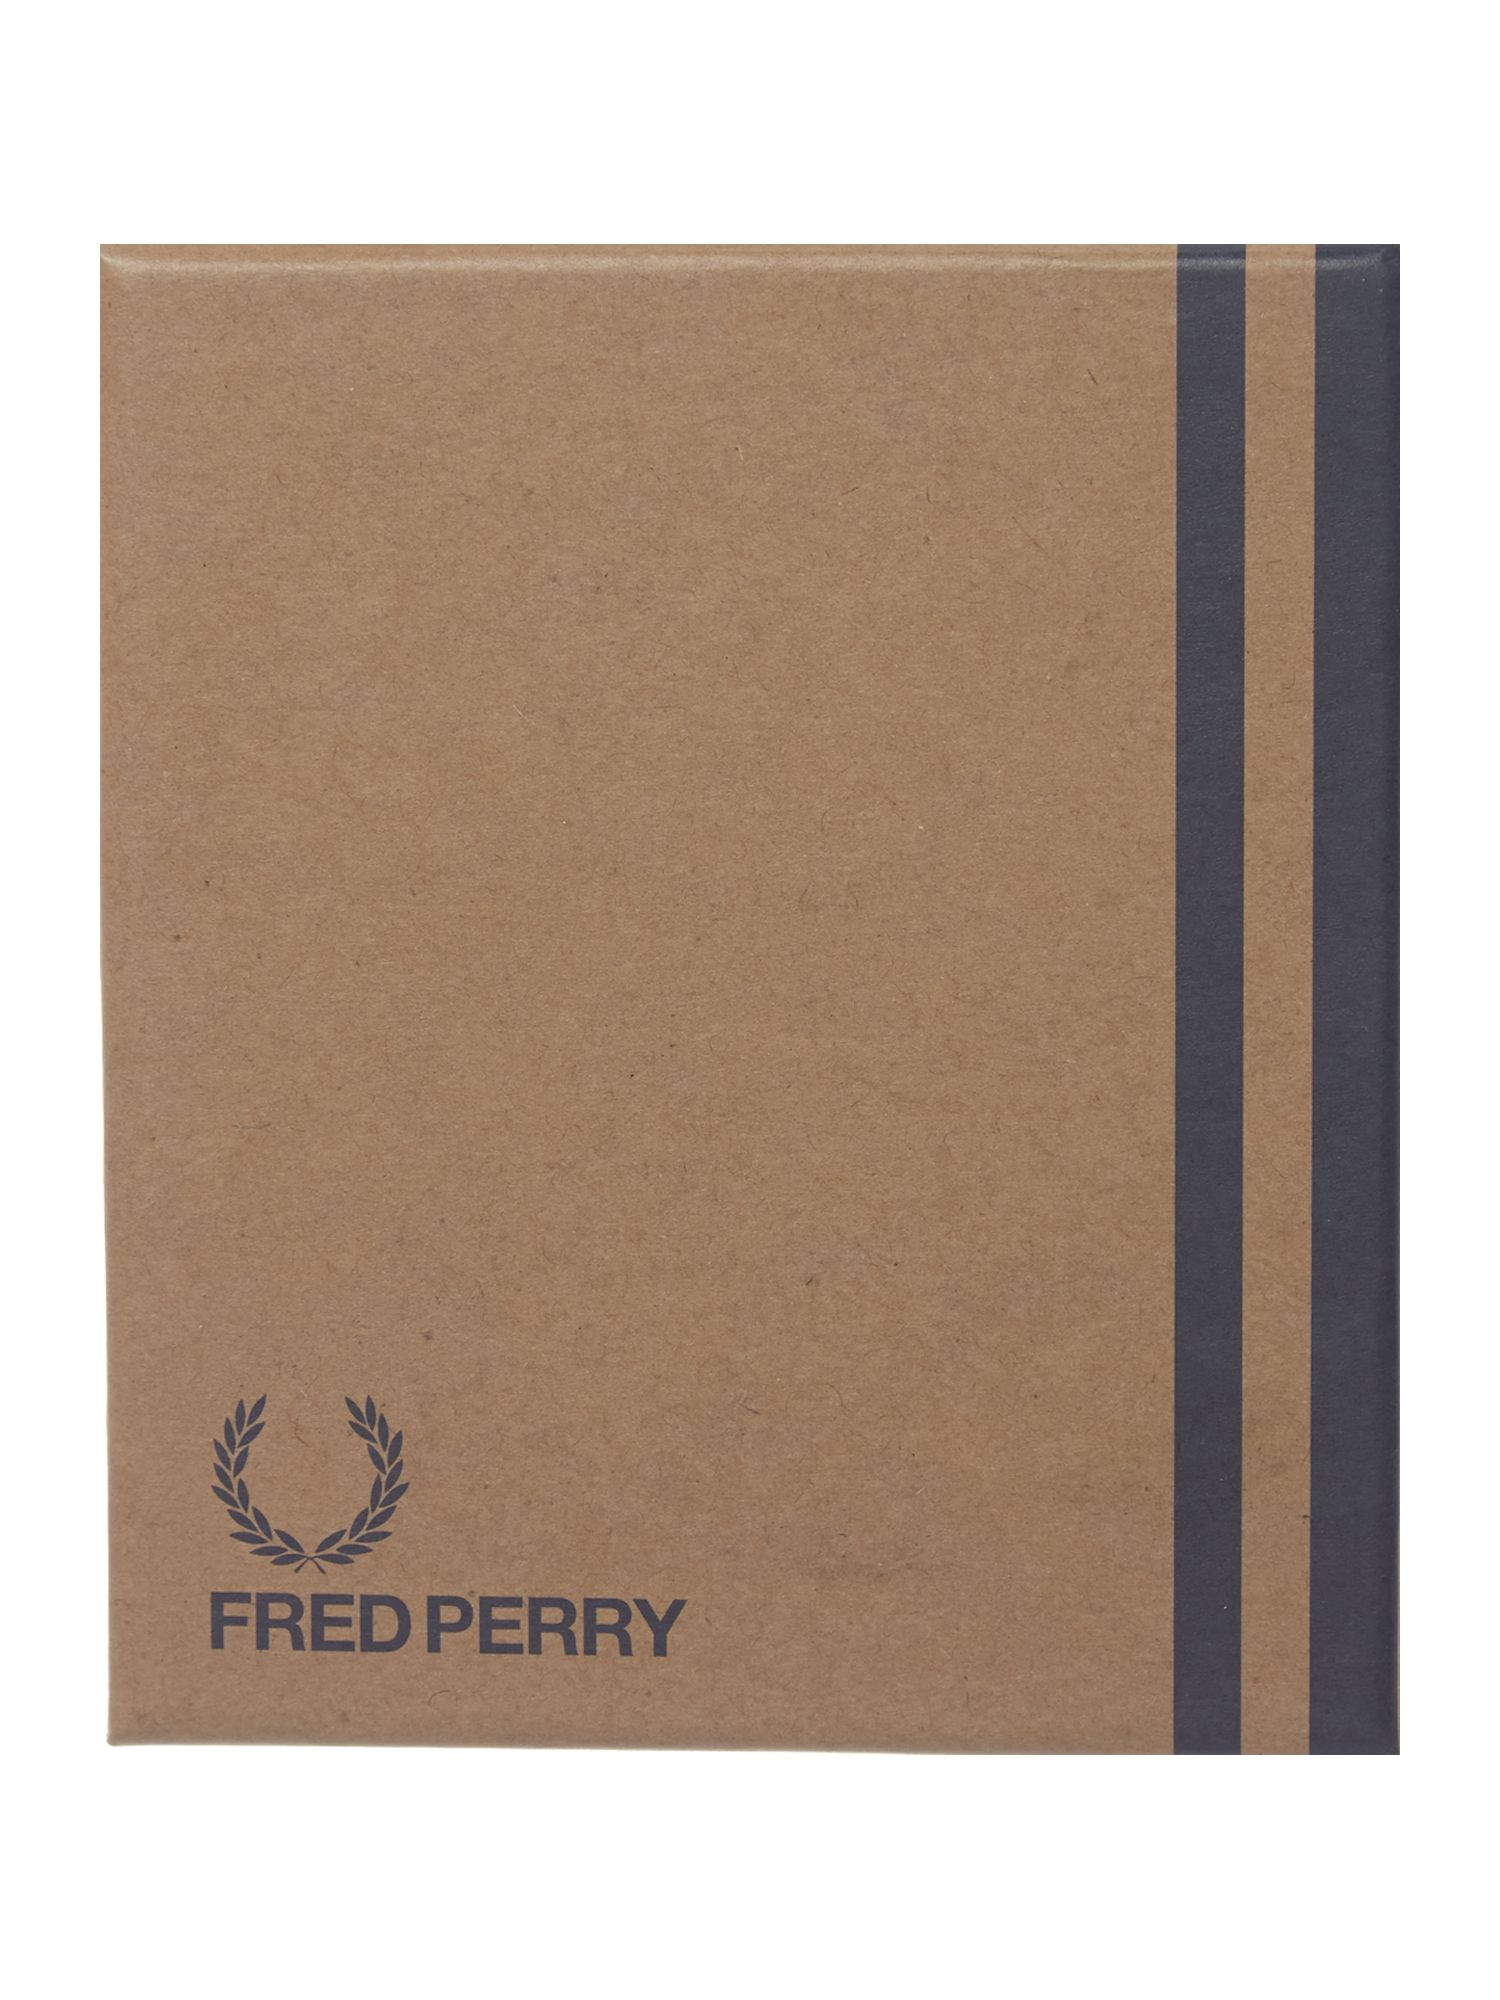 fred buddhist single men Find fred perry men's fashion at shopstyle shop the latest collection of fred perry men's fashion from the most popular stores - all in one place.